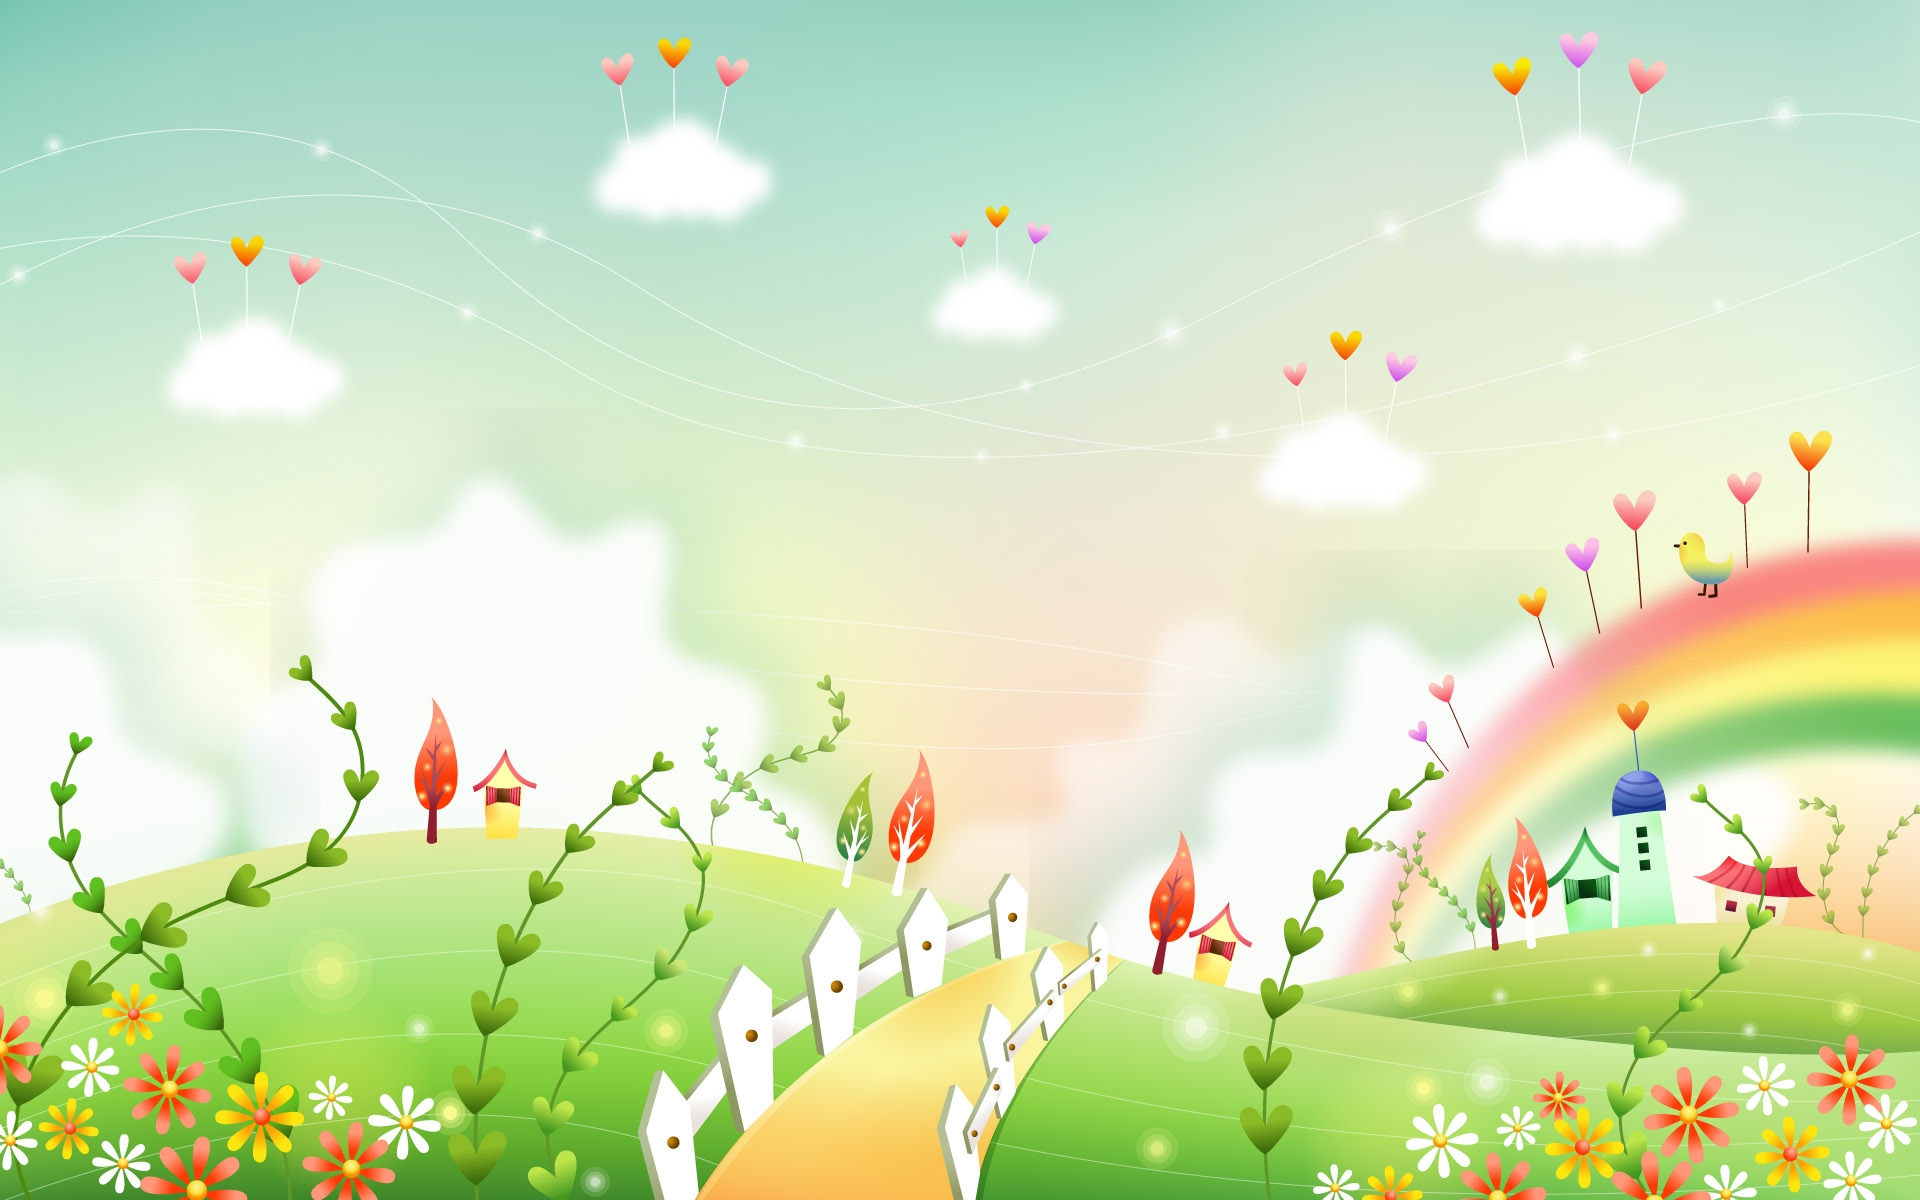 Nature clipart wallpaper